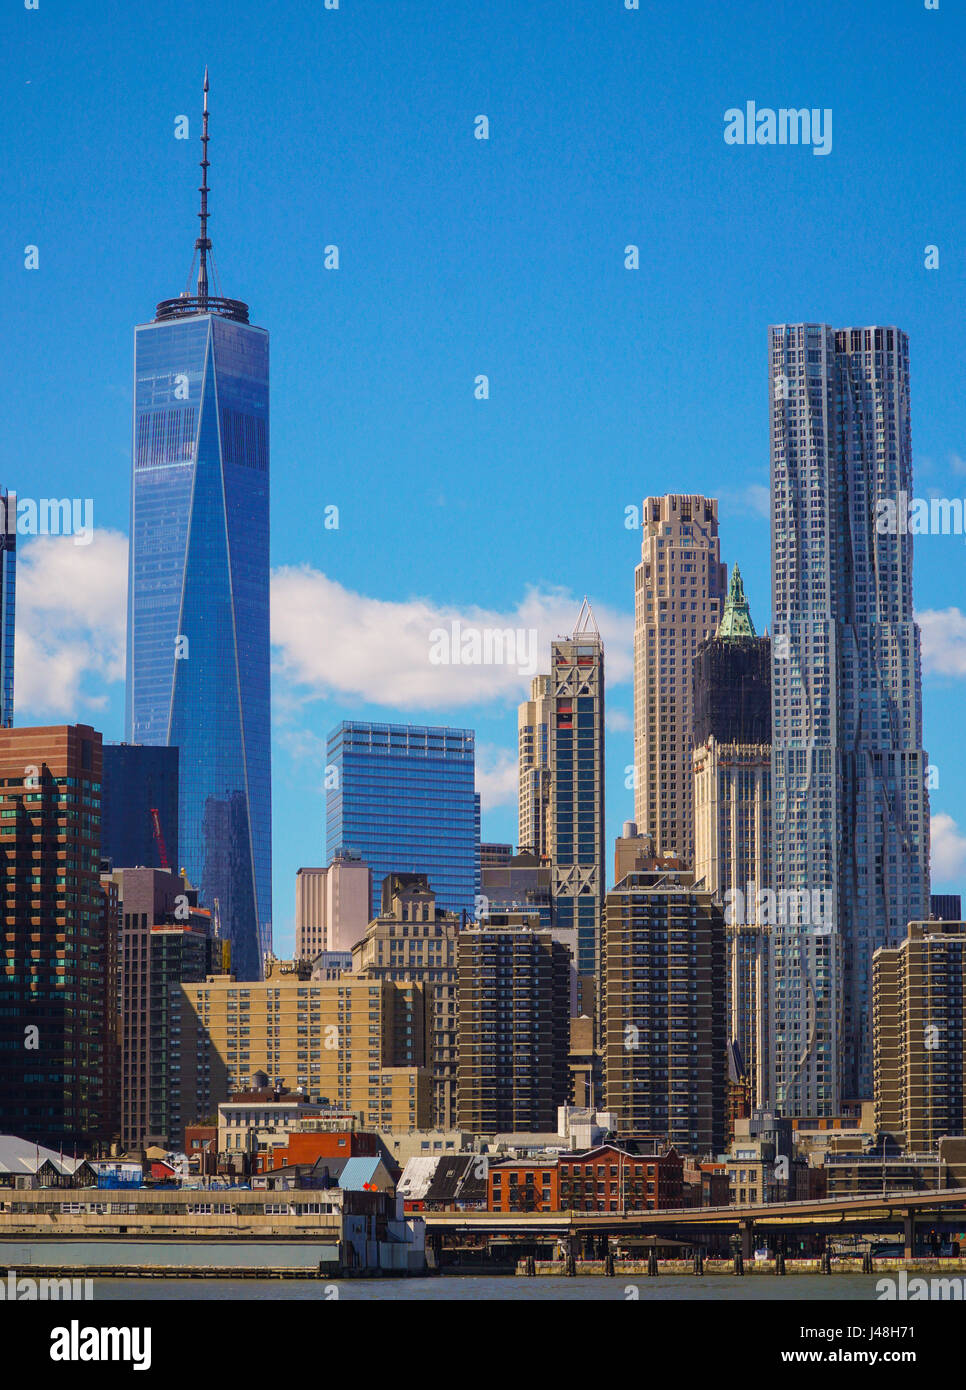 The skyline of Downtown Manhattan financial district with One World Trade Center building- MANHATTAN / NEW YORK - Stock Image